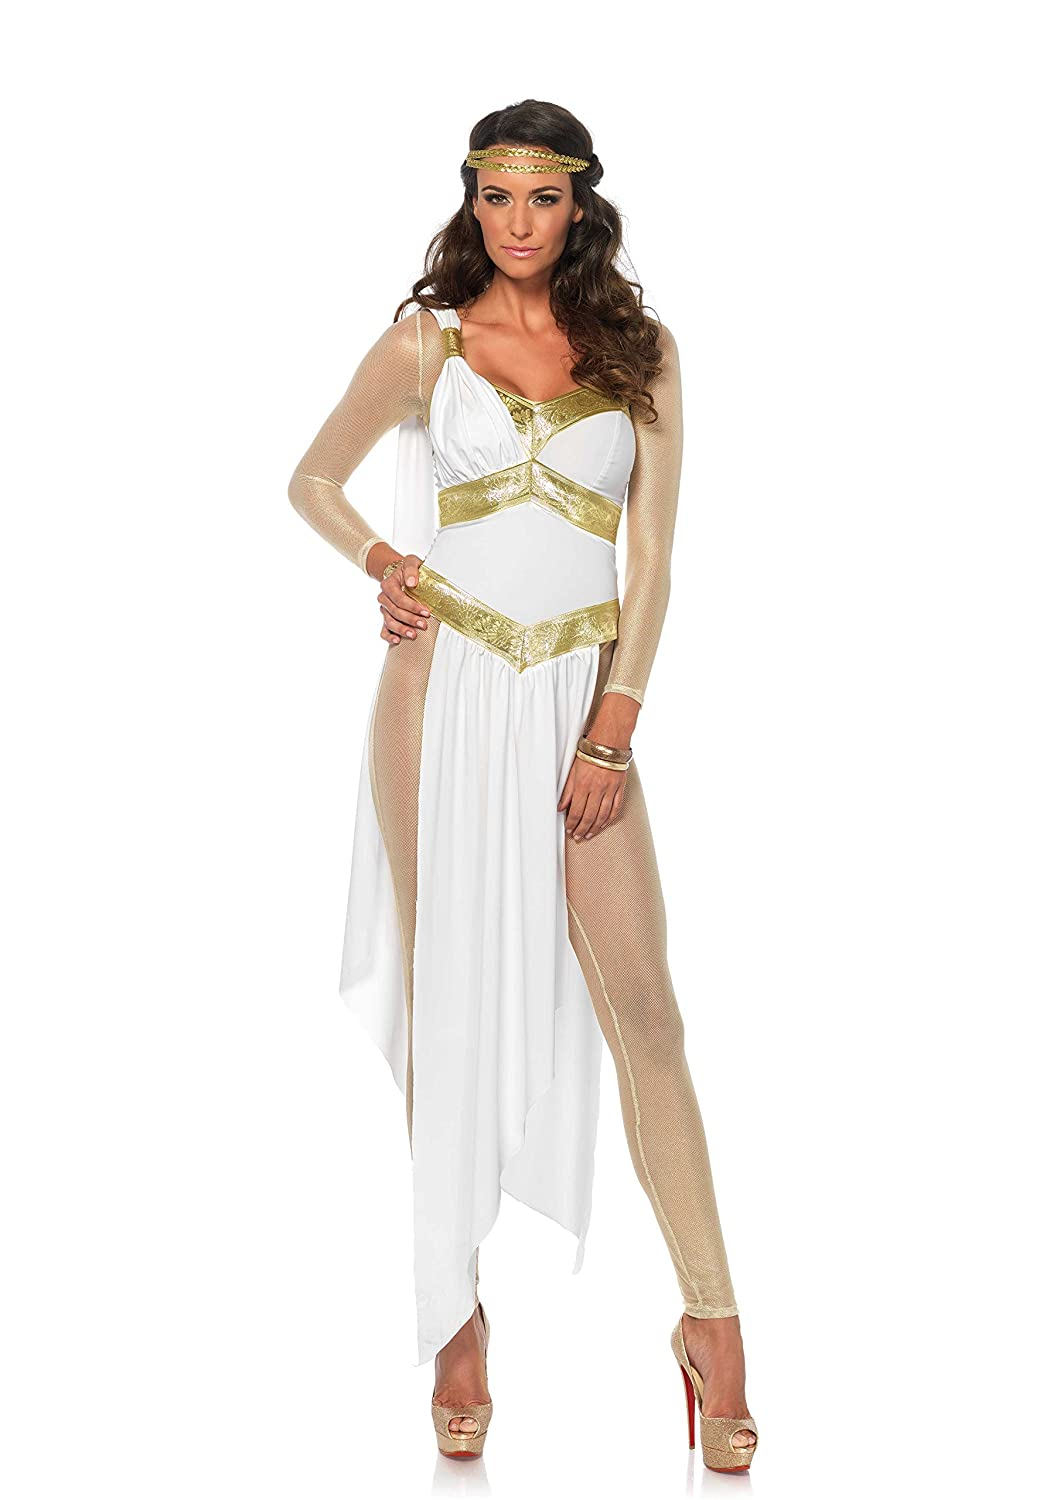 Medium  UK 10 Leg Avenue golden Goddess Costume  85578